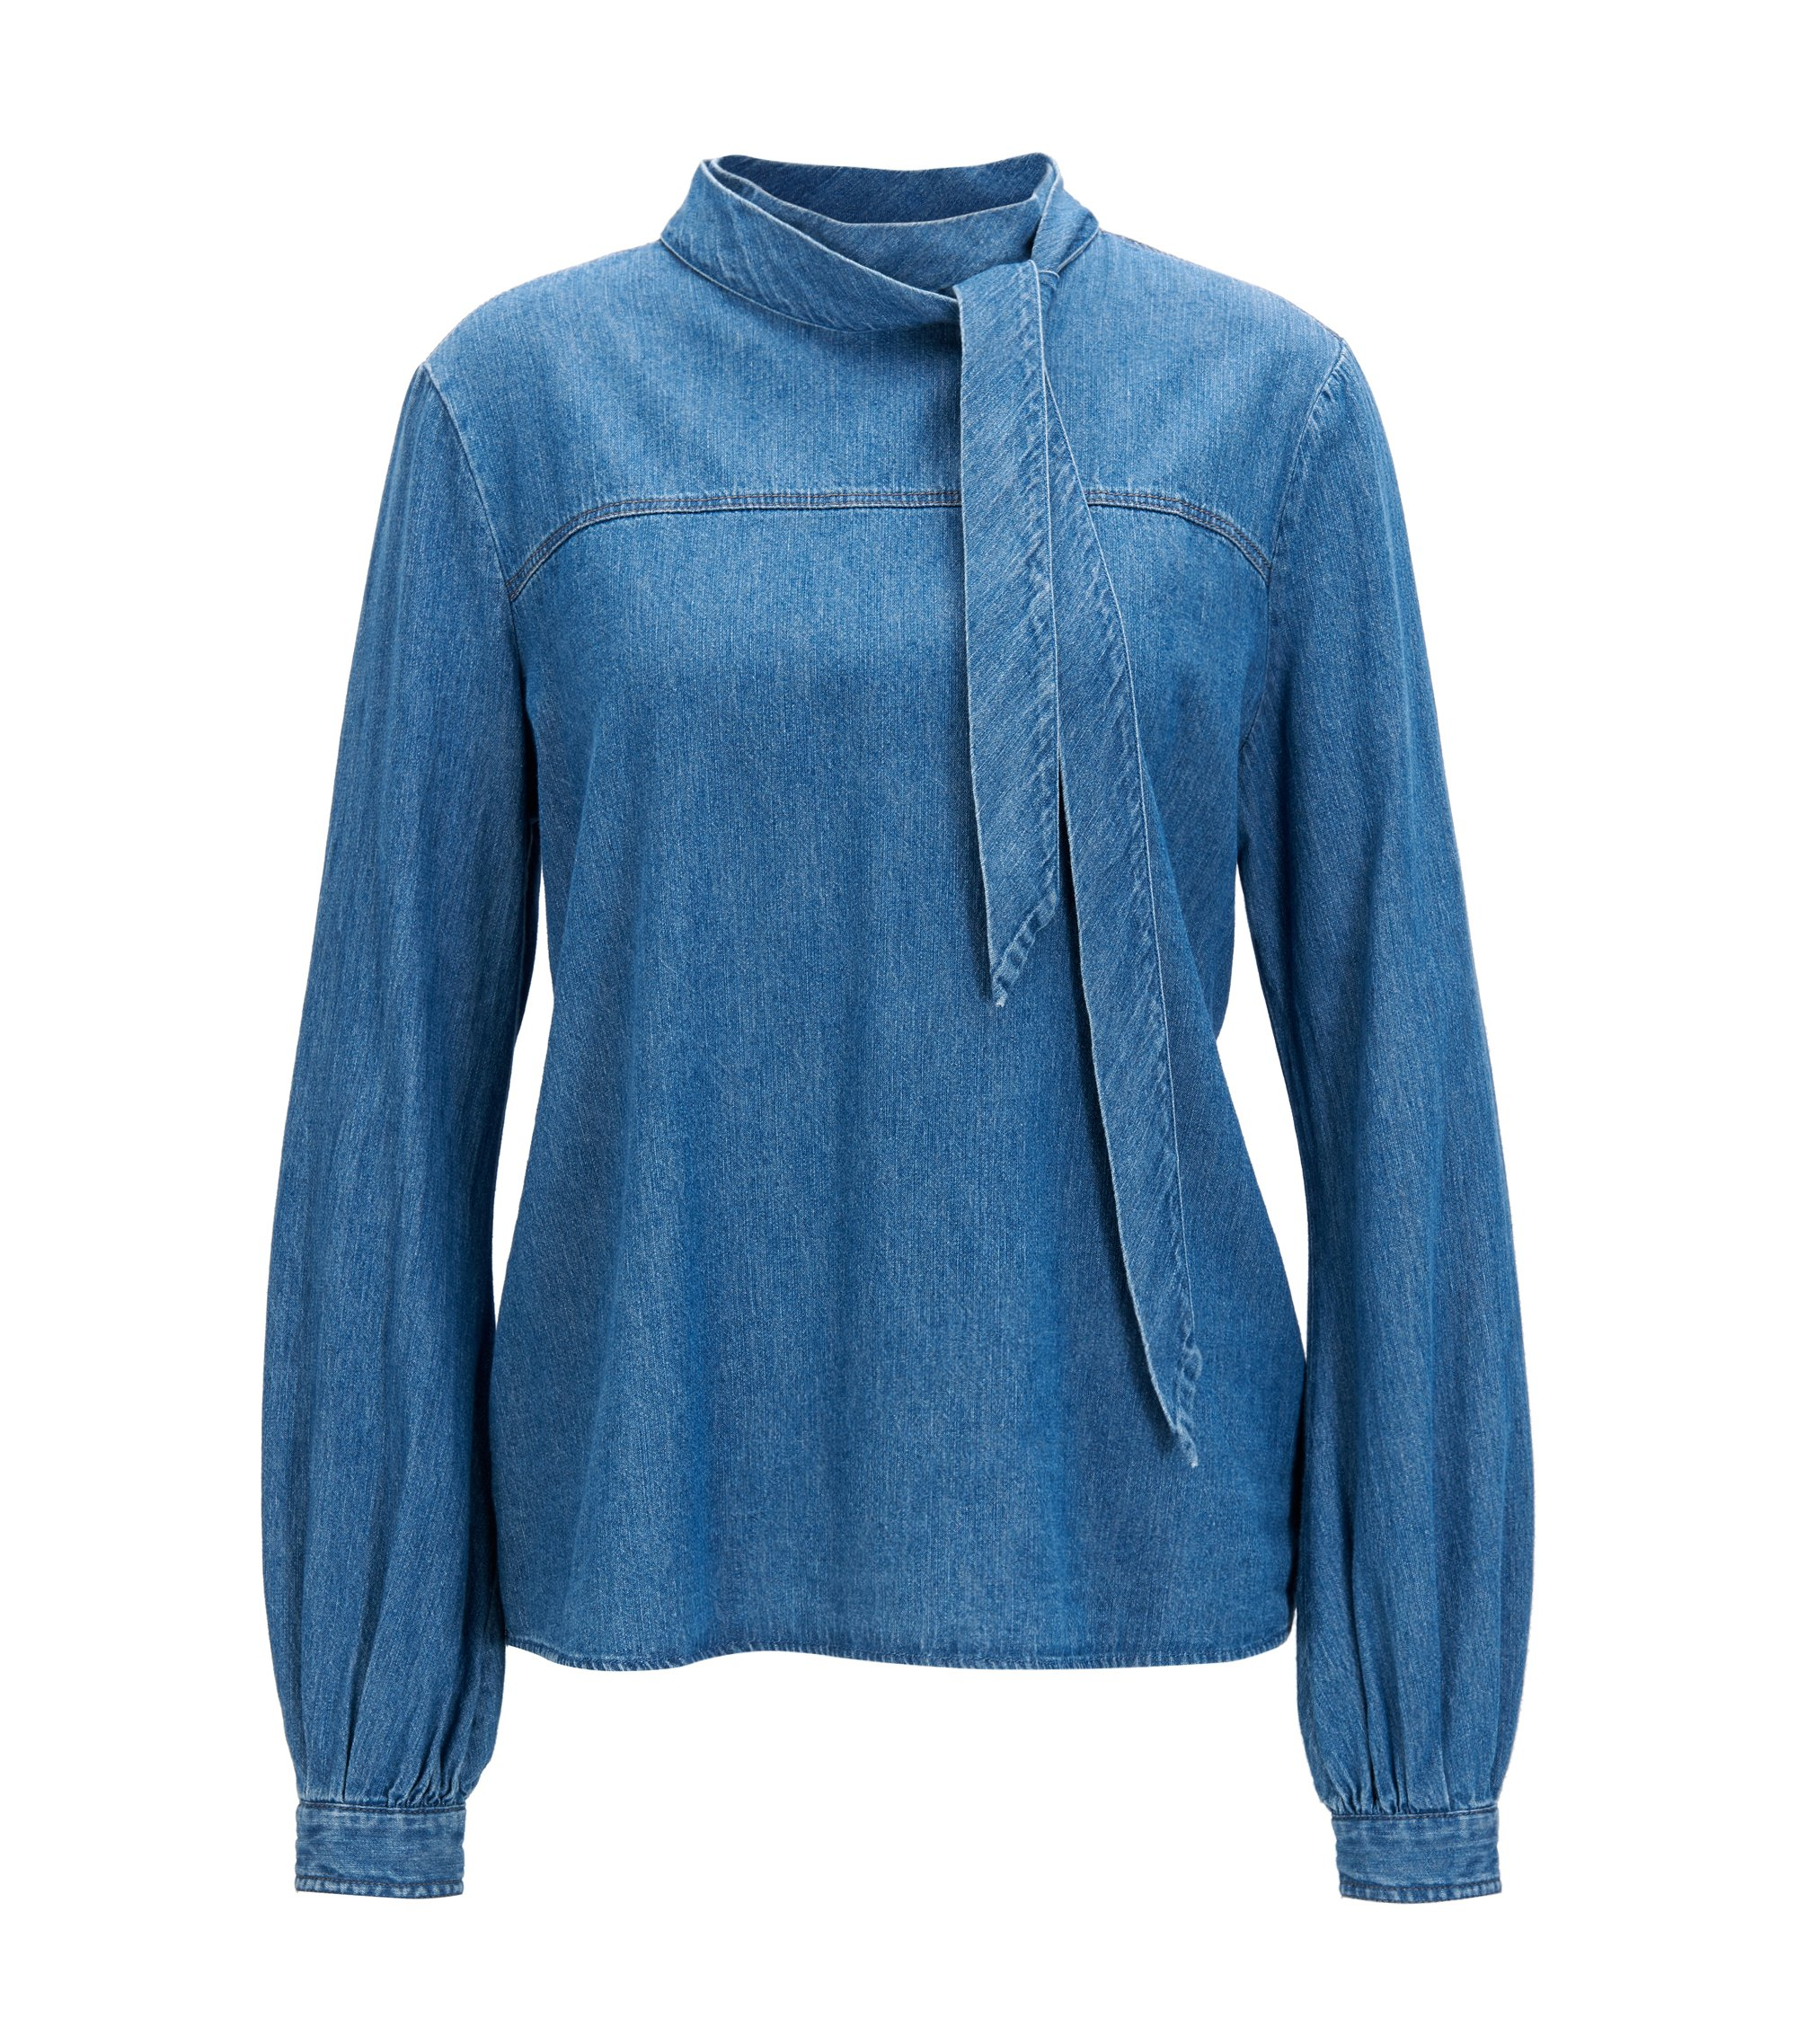 Regular-fit blouse in indigo denim, Donkerblauw